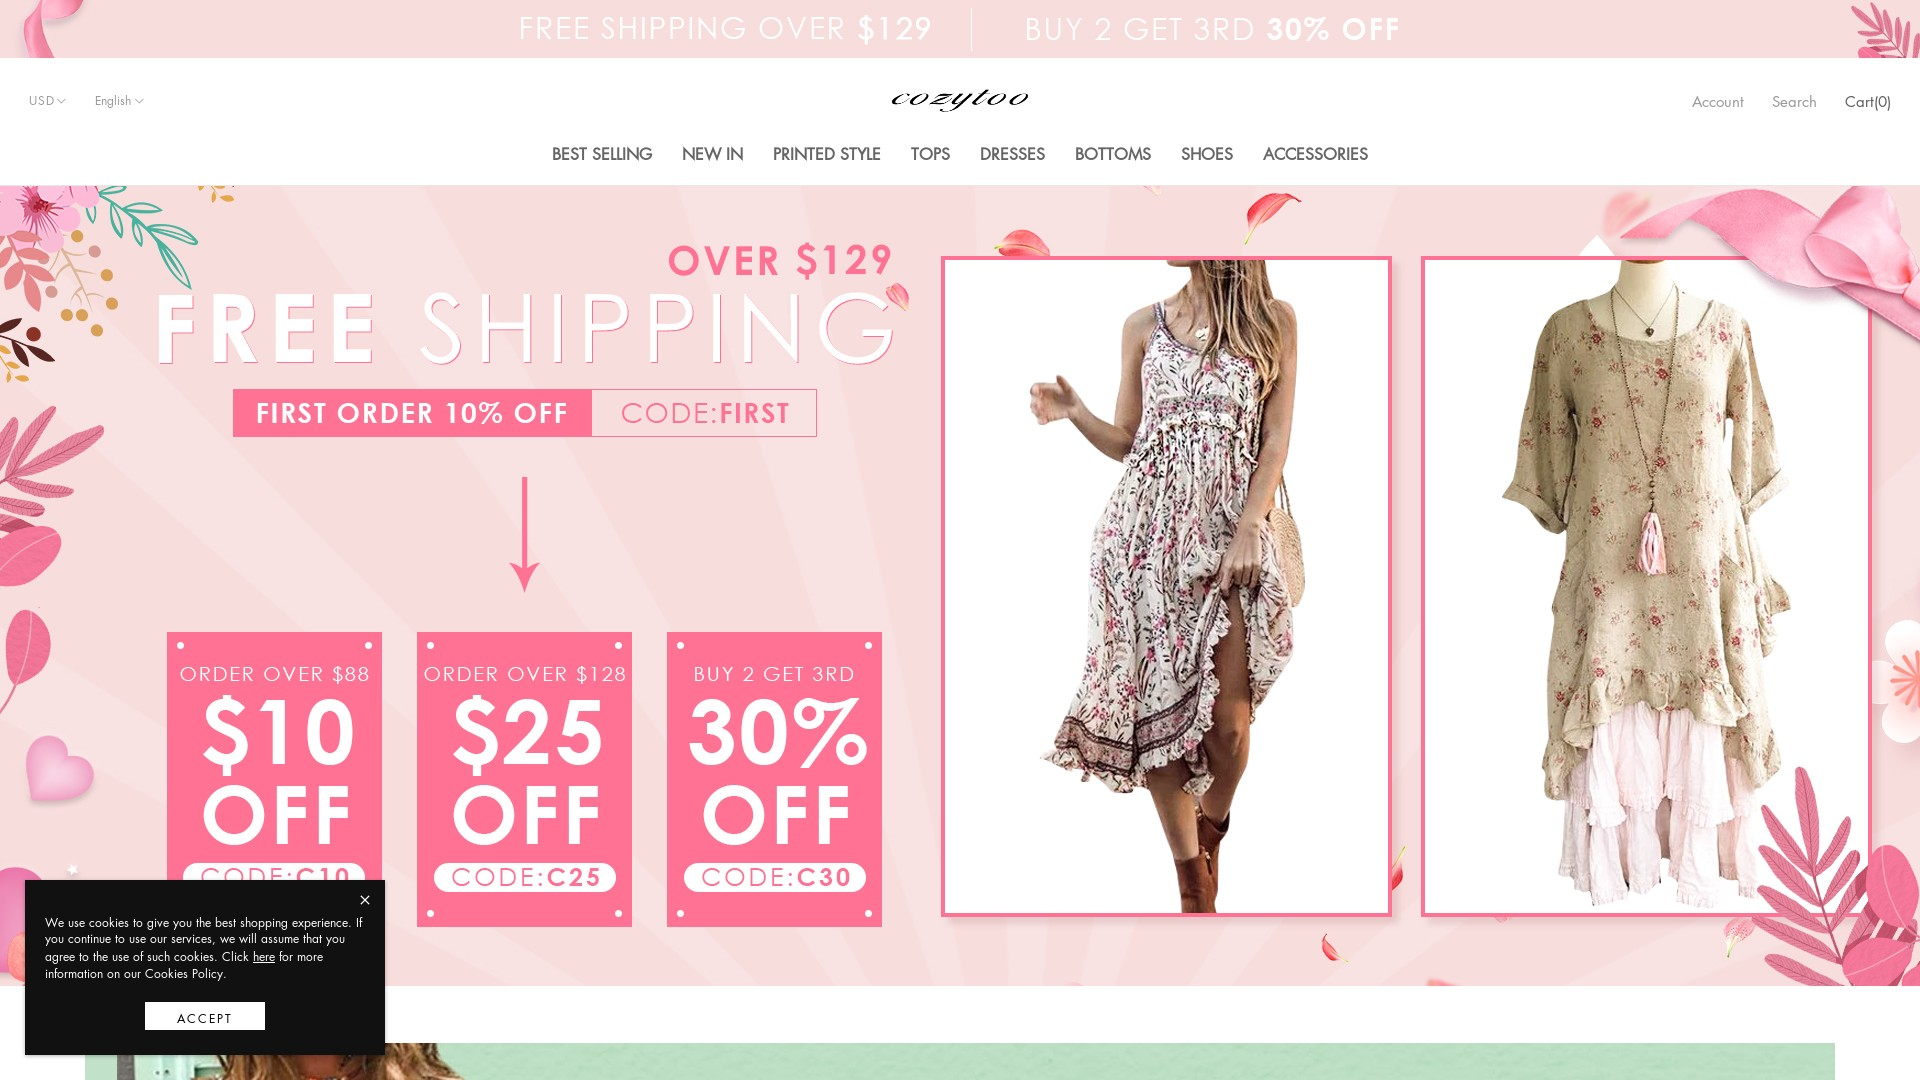 Is Cozytoo a Scam? See the Review of the Apparel Store